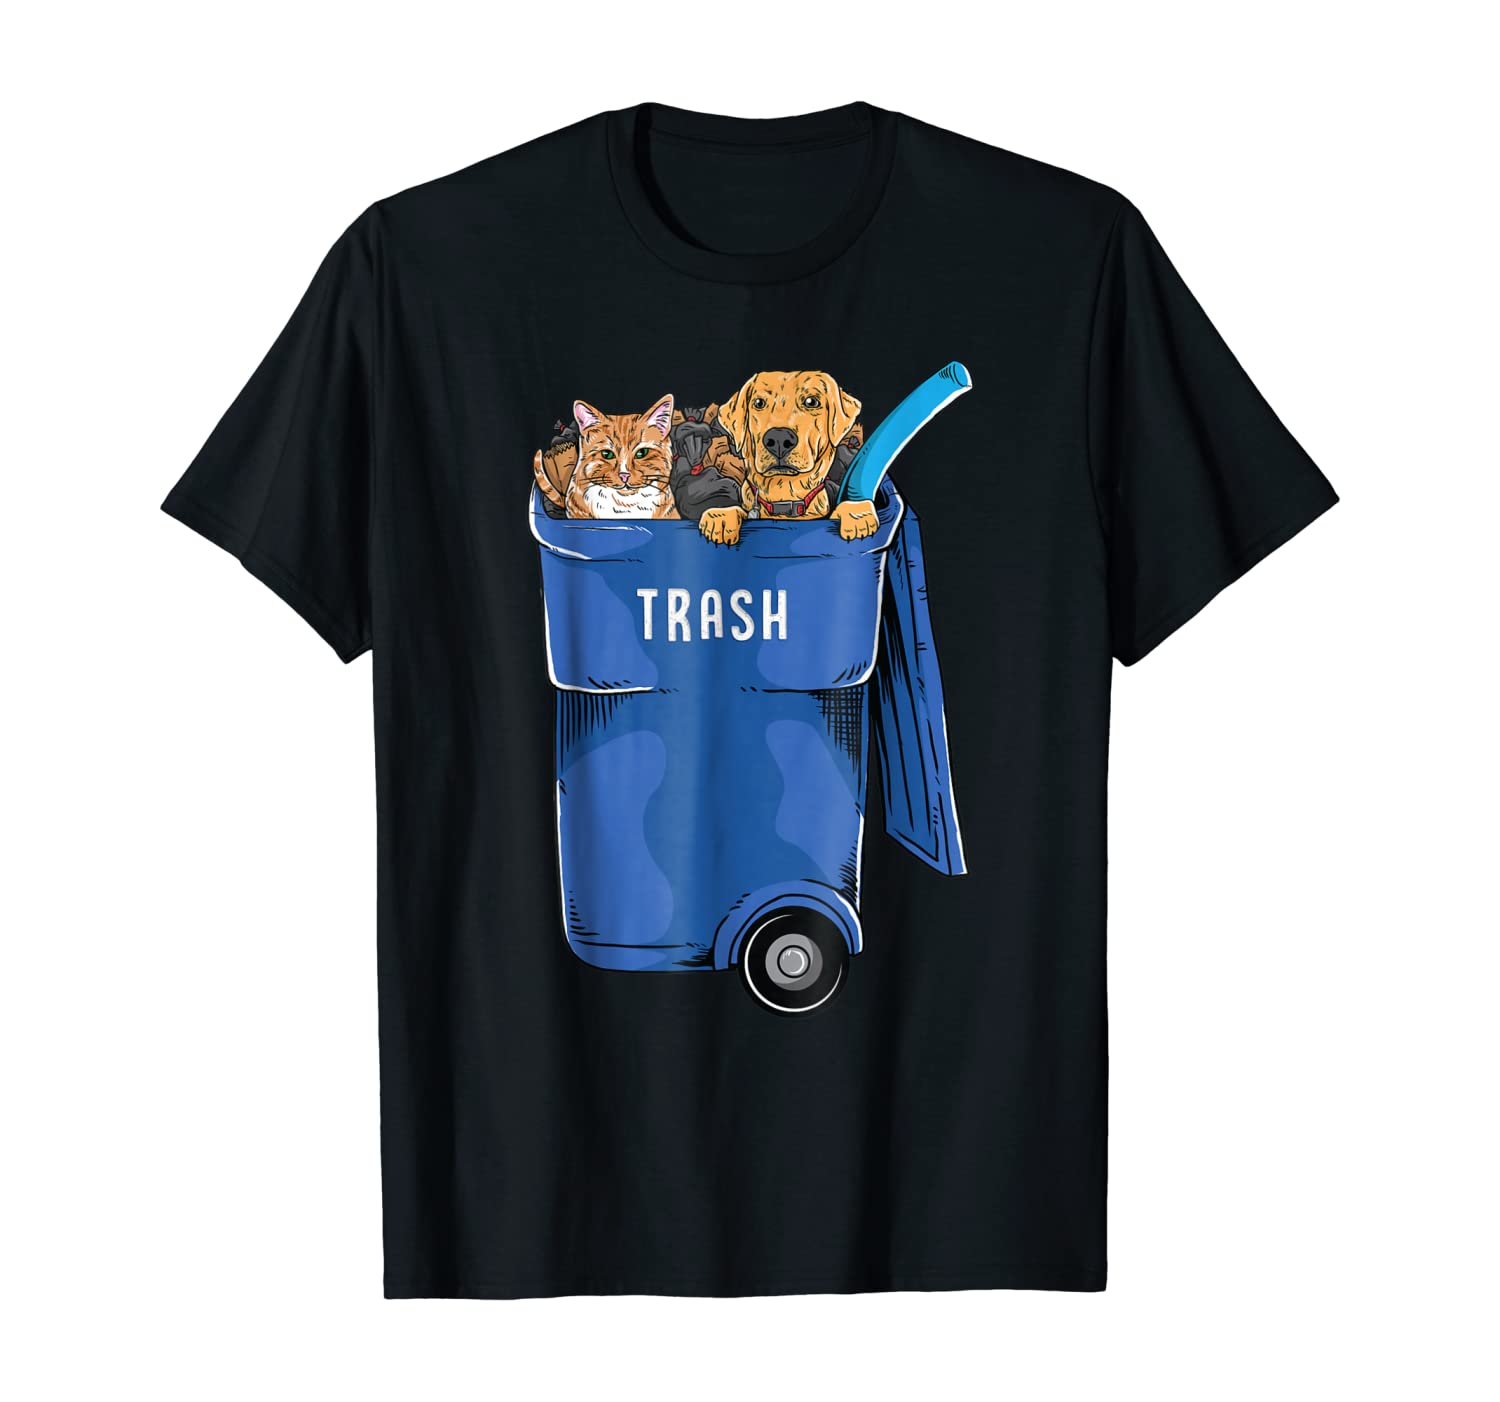 Trash Buddies Cheeto and Uno - Shane Dawson T-Shirt